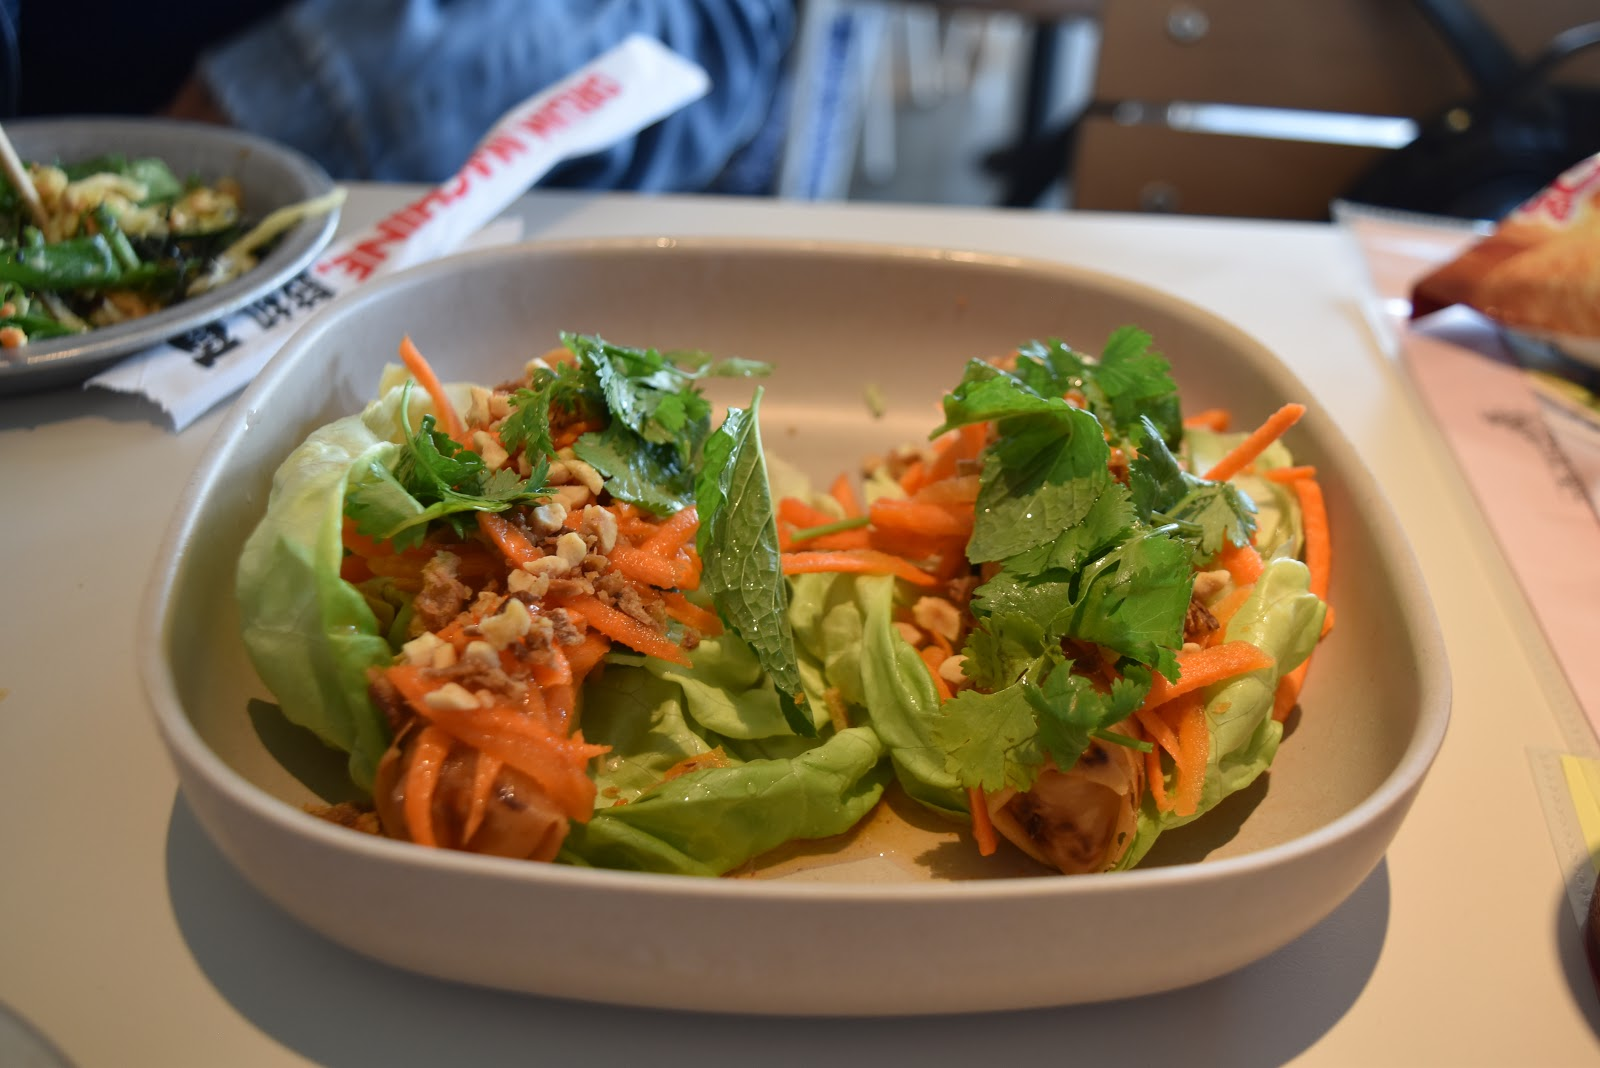 Spring Roll Lettuce Wrap at Tin Drum Asian Kitchen